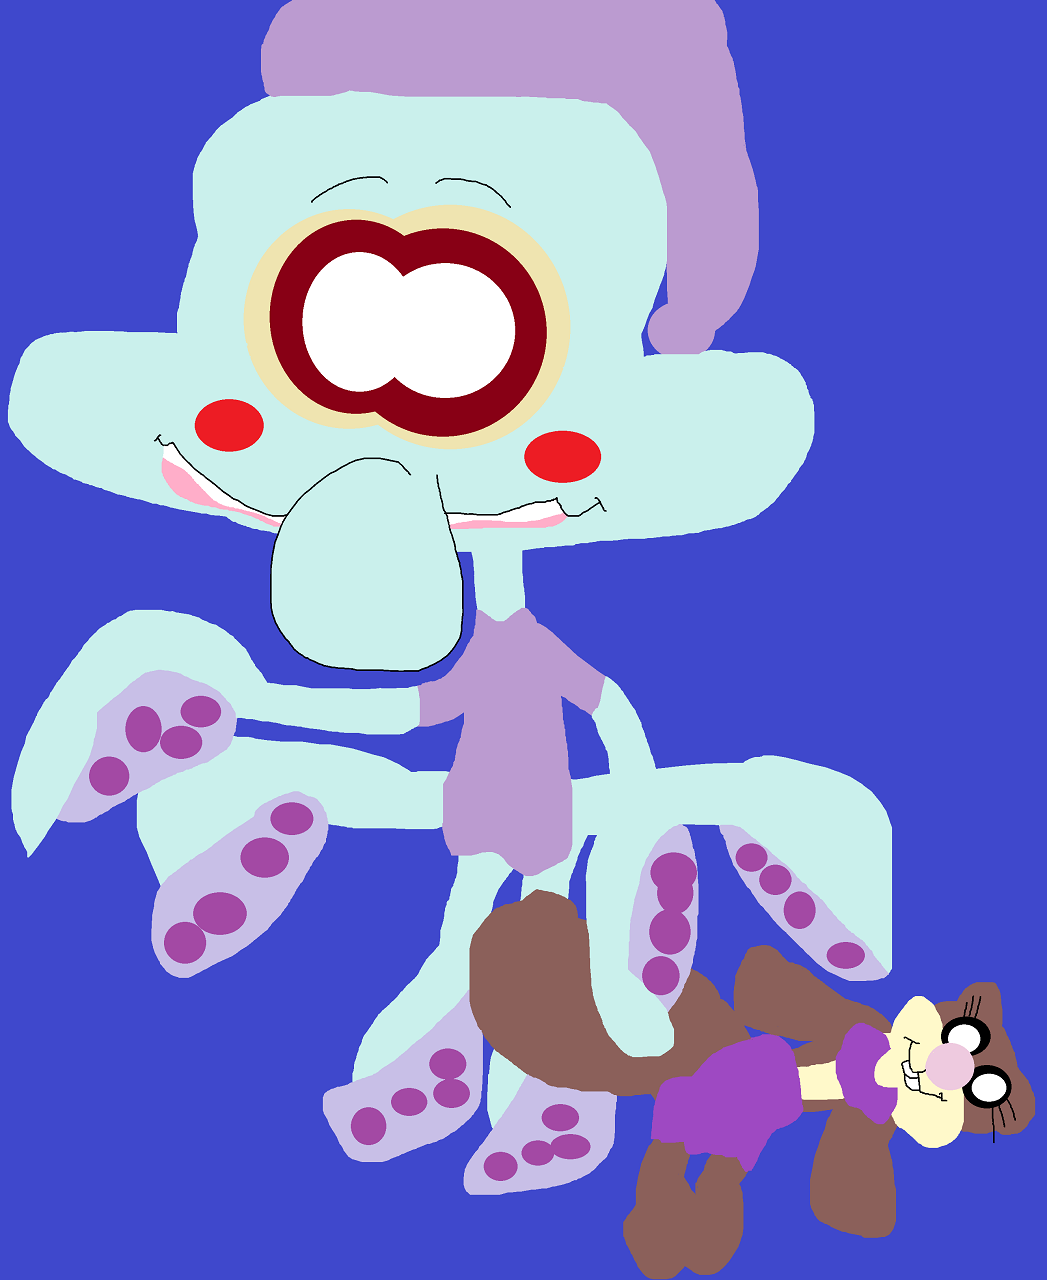 Cute Squidward Blushing And Holding A Sandy Plushie by Falconlobo